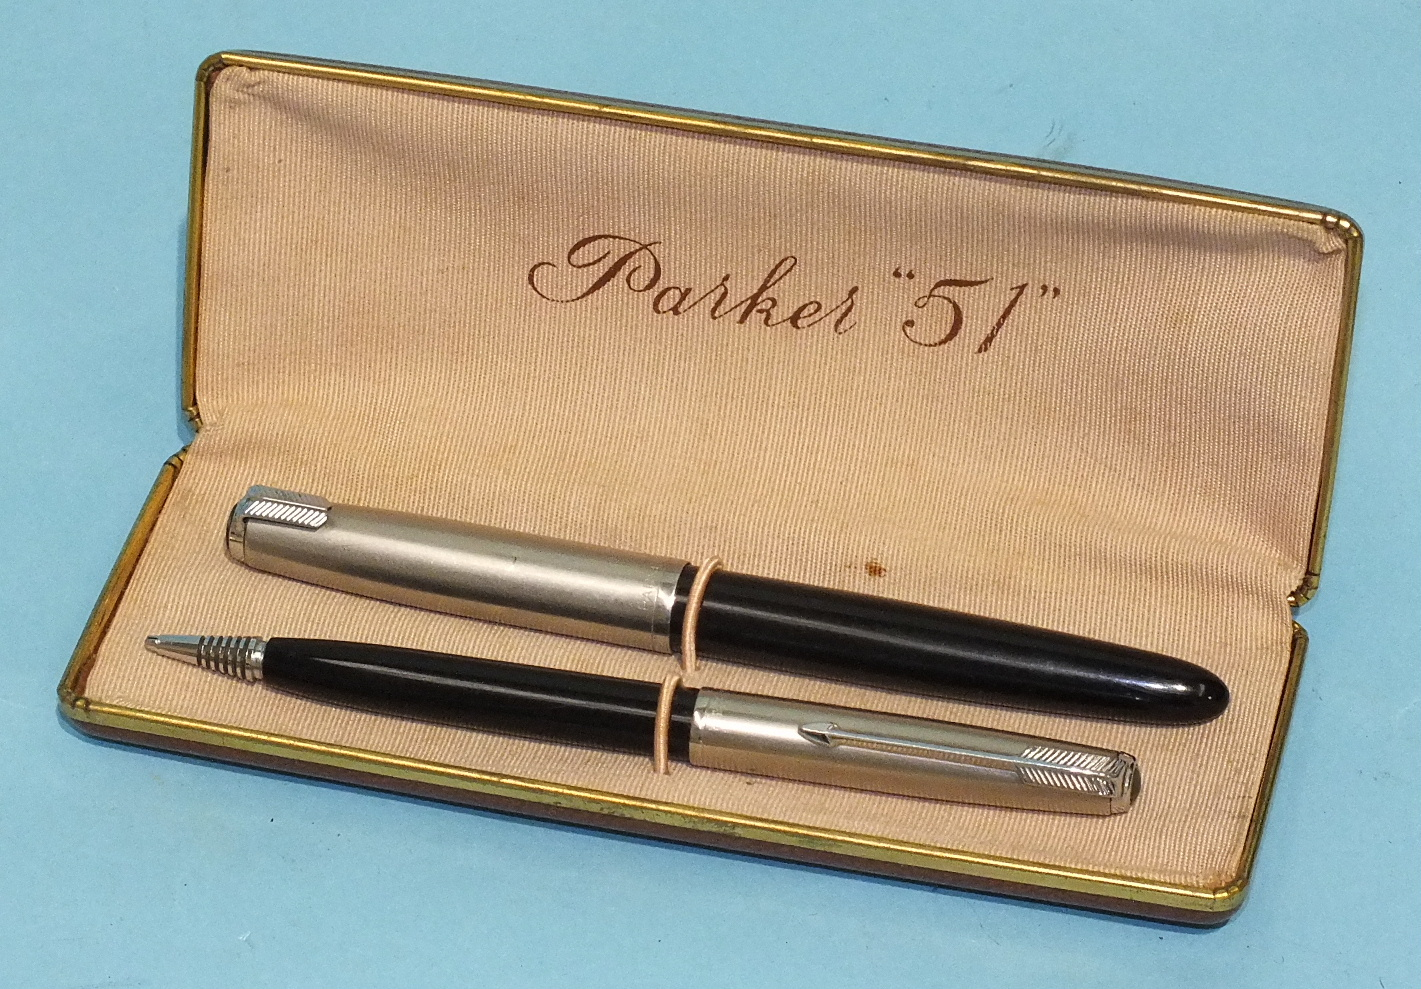 Lot 167 - A 'Parker 51' black-bodied fountain pen with chromed cap, (clip a/f) and a matching propelling